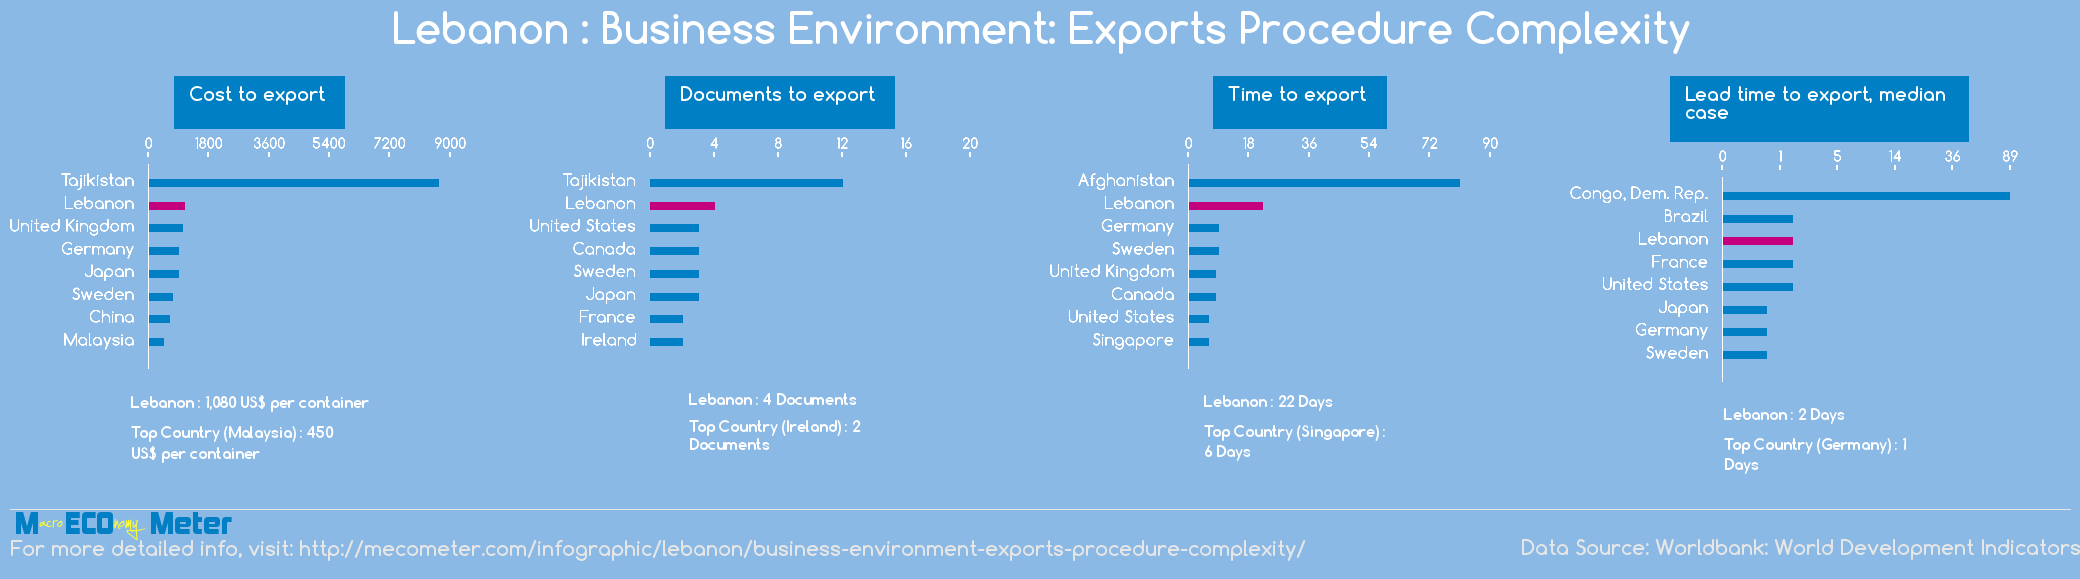 Lebanon : Business Environment: Exports Procedure Complexity